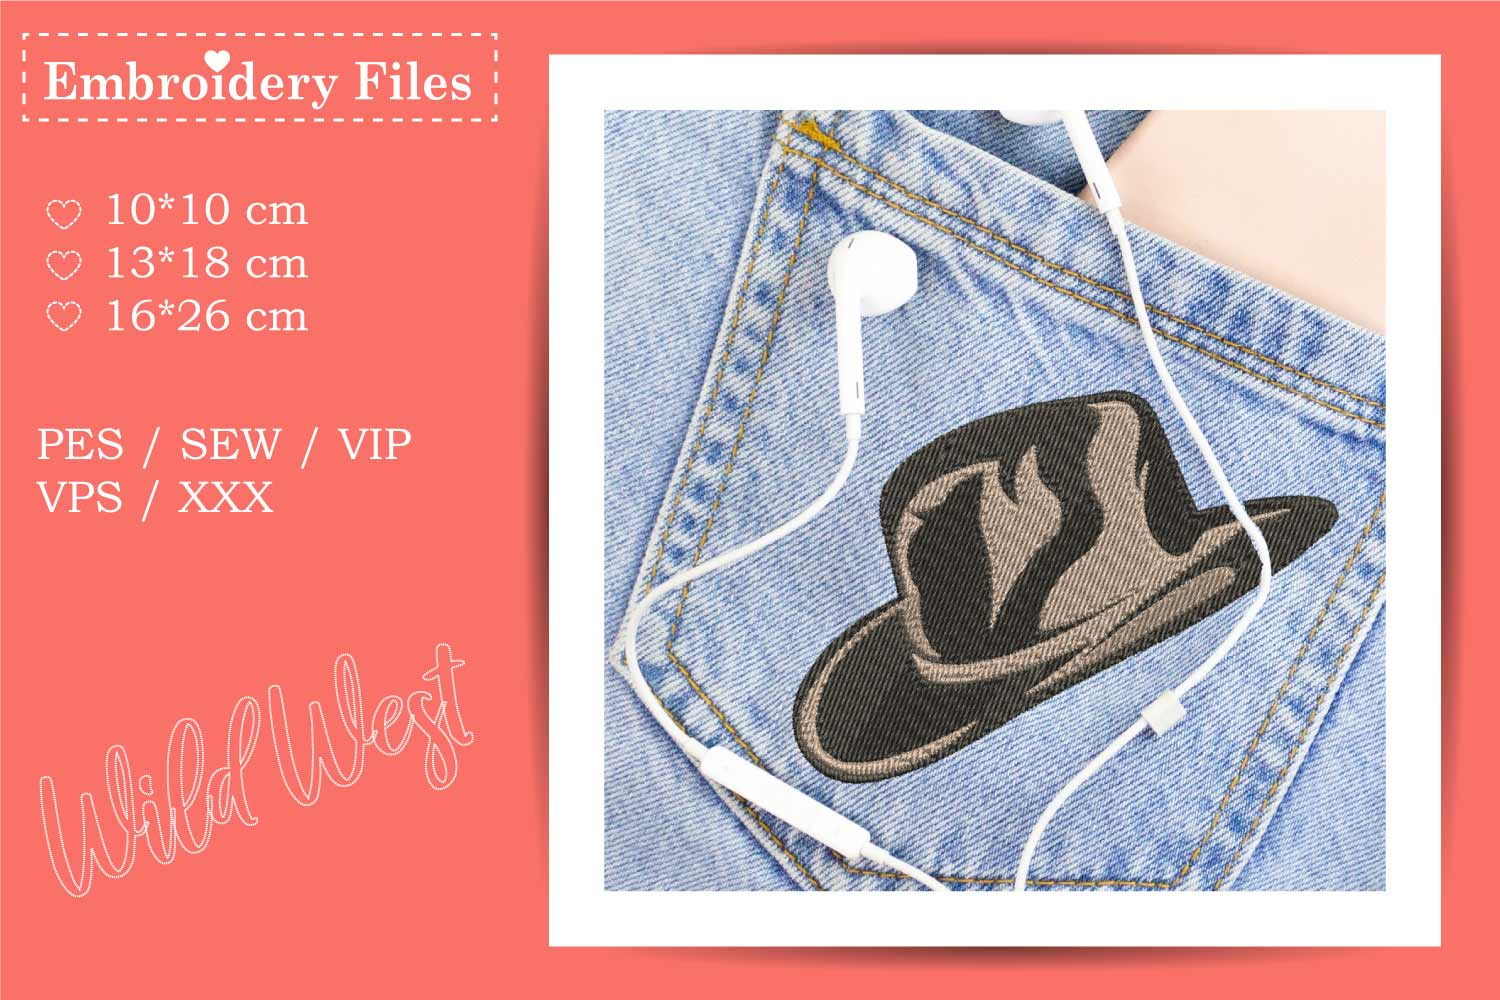 Cowboy Hat - Embroidery File for Beginners example image 2